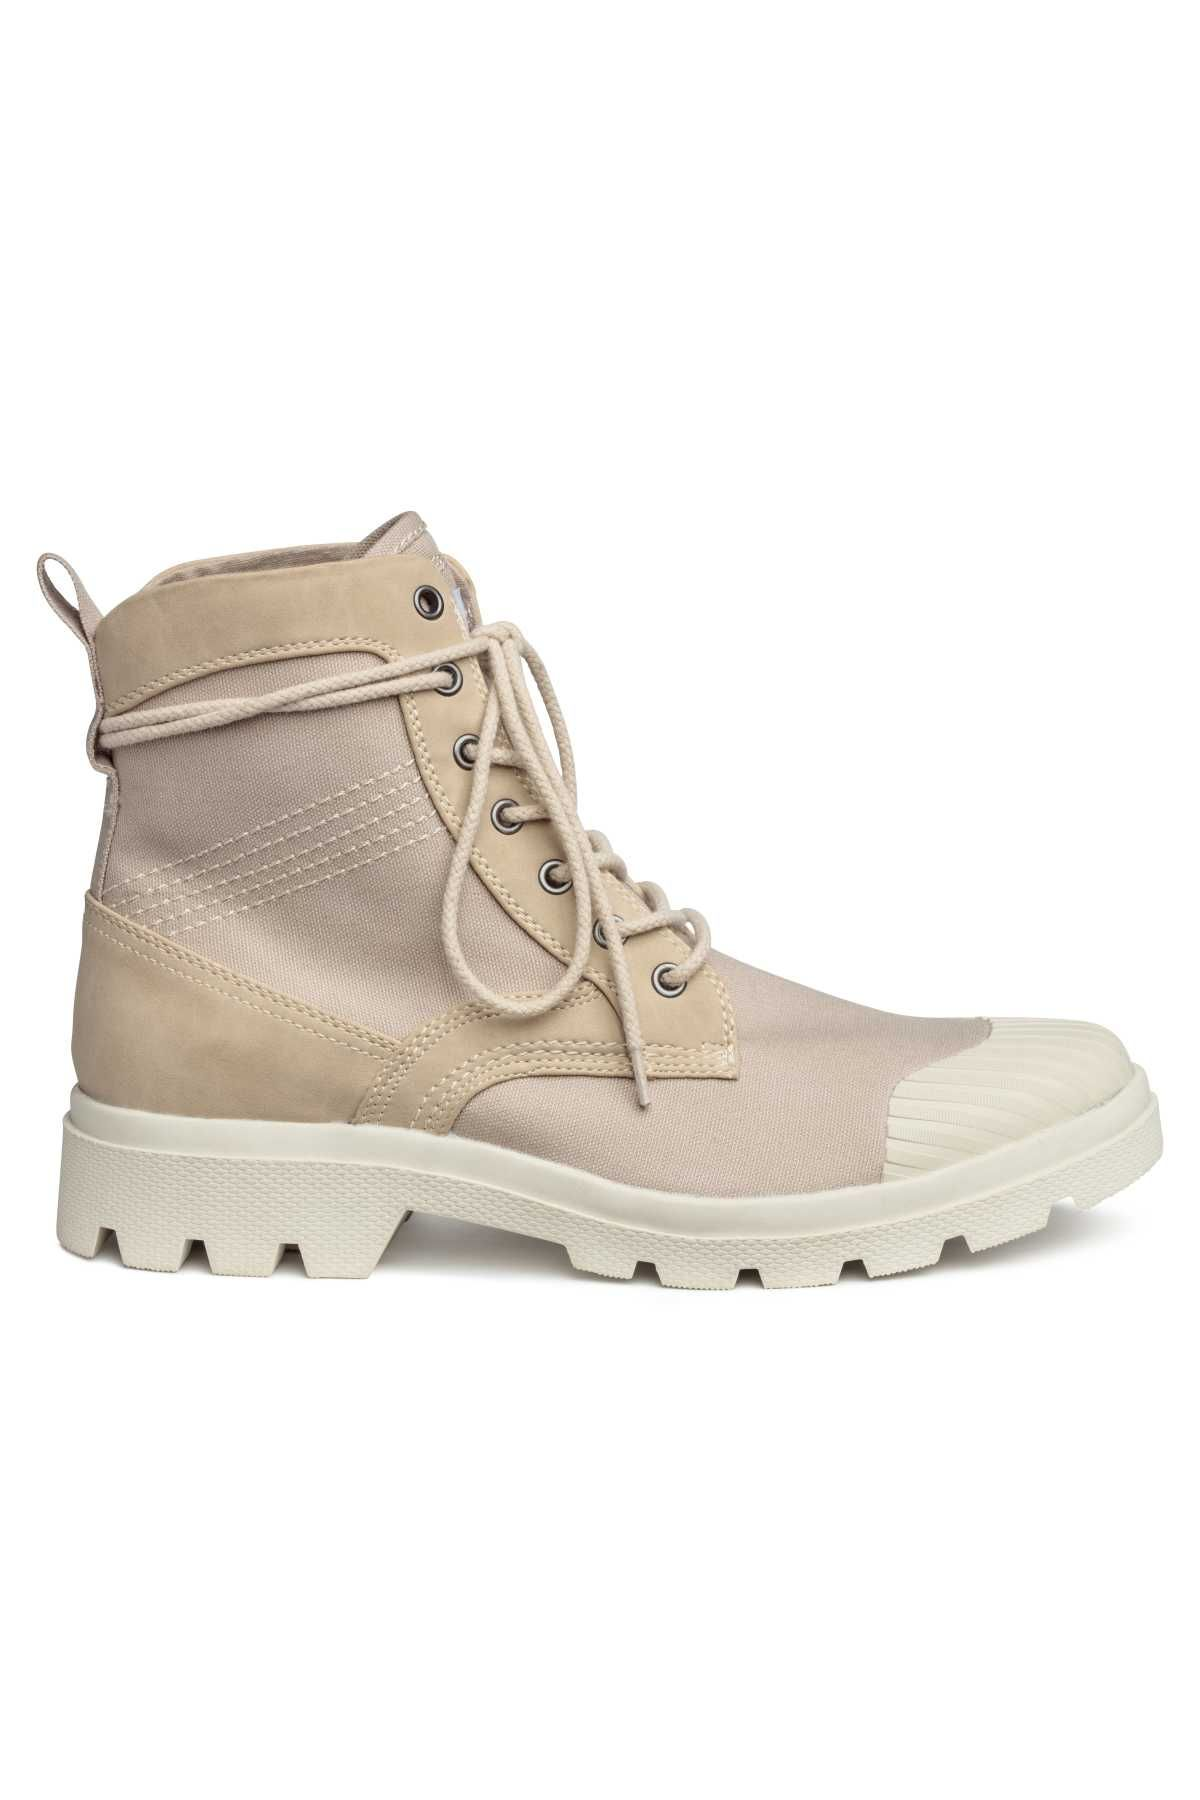 Light beige. Cotton canvas boots with a rubber toe cap and faux suede  details. Ankle-high leg section 05a7f68e7a